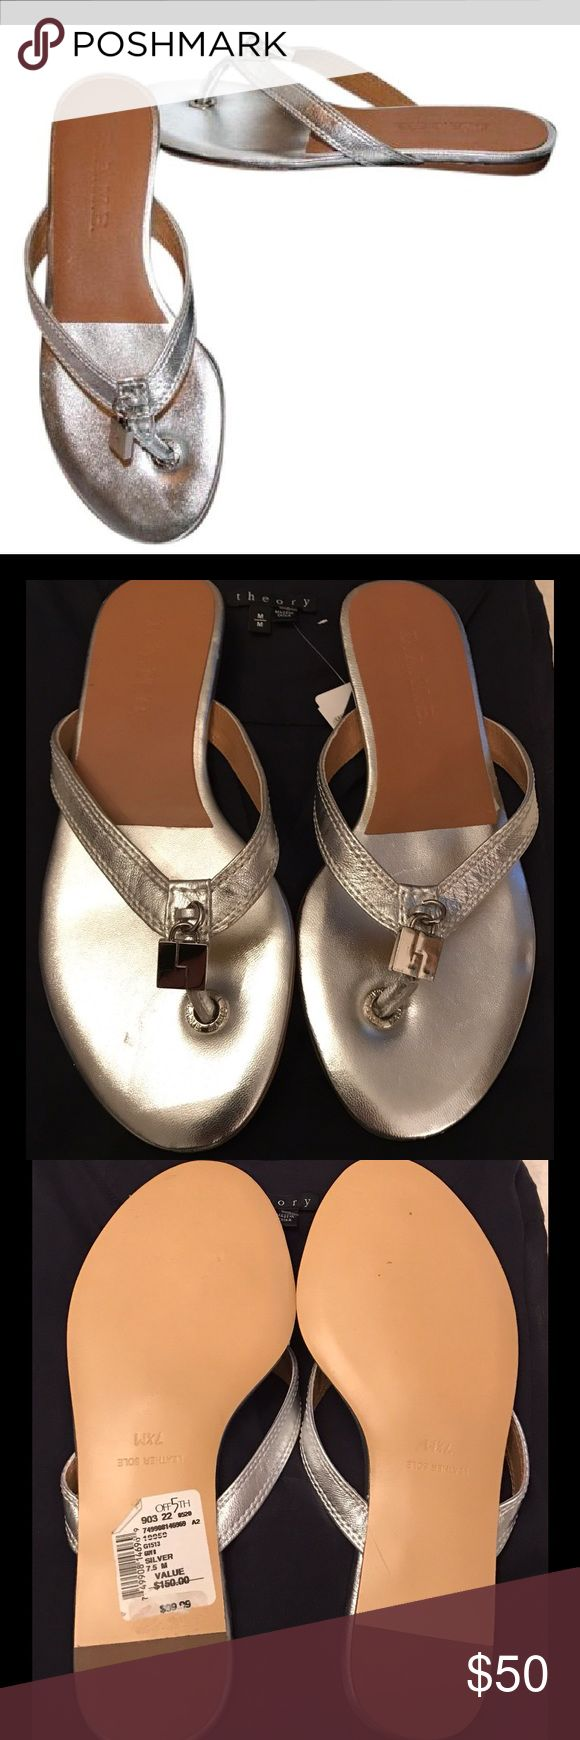 LAMB Thong Silver Flat Sandals 💜 LAMB Thong, Silver Flat Sandals. Size 7.5, New with Tags. No box. Slight scratch on bed of right shoe. Great shoe when you want comfort but don't want to wear flip flops! 💜 LAMB Shoes Sandals